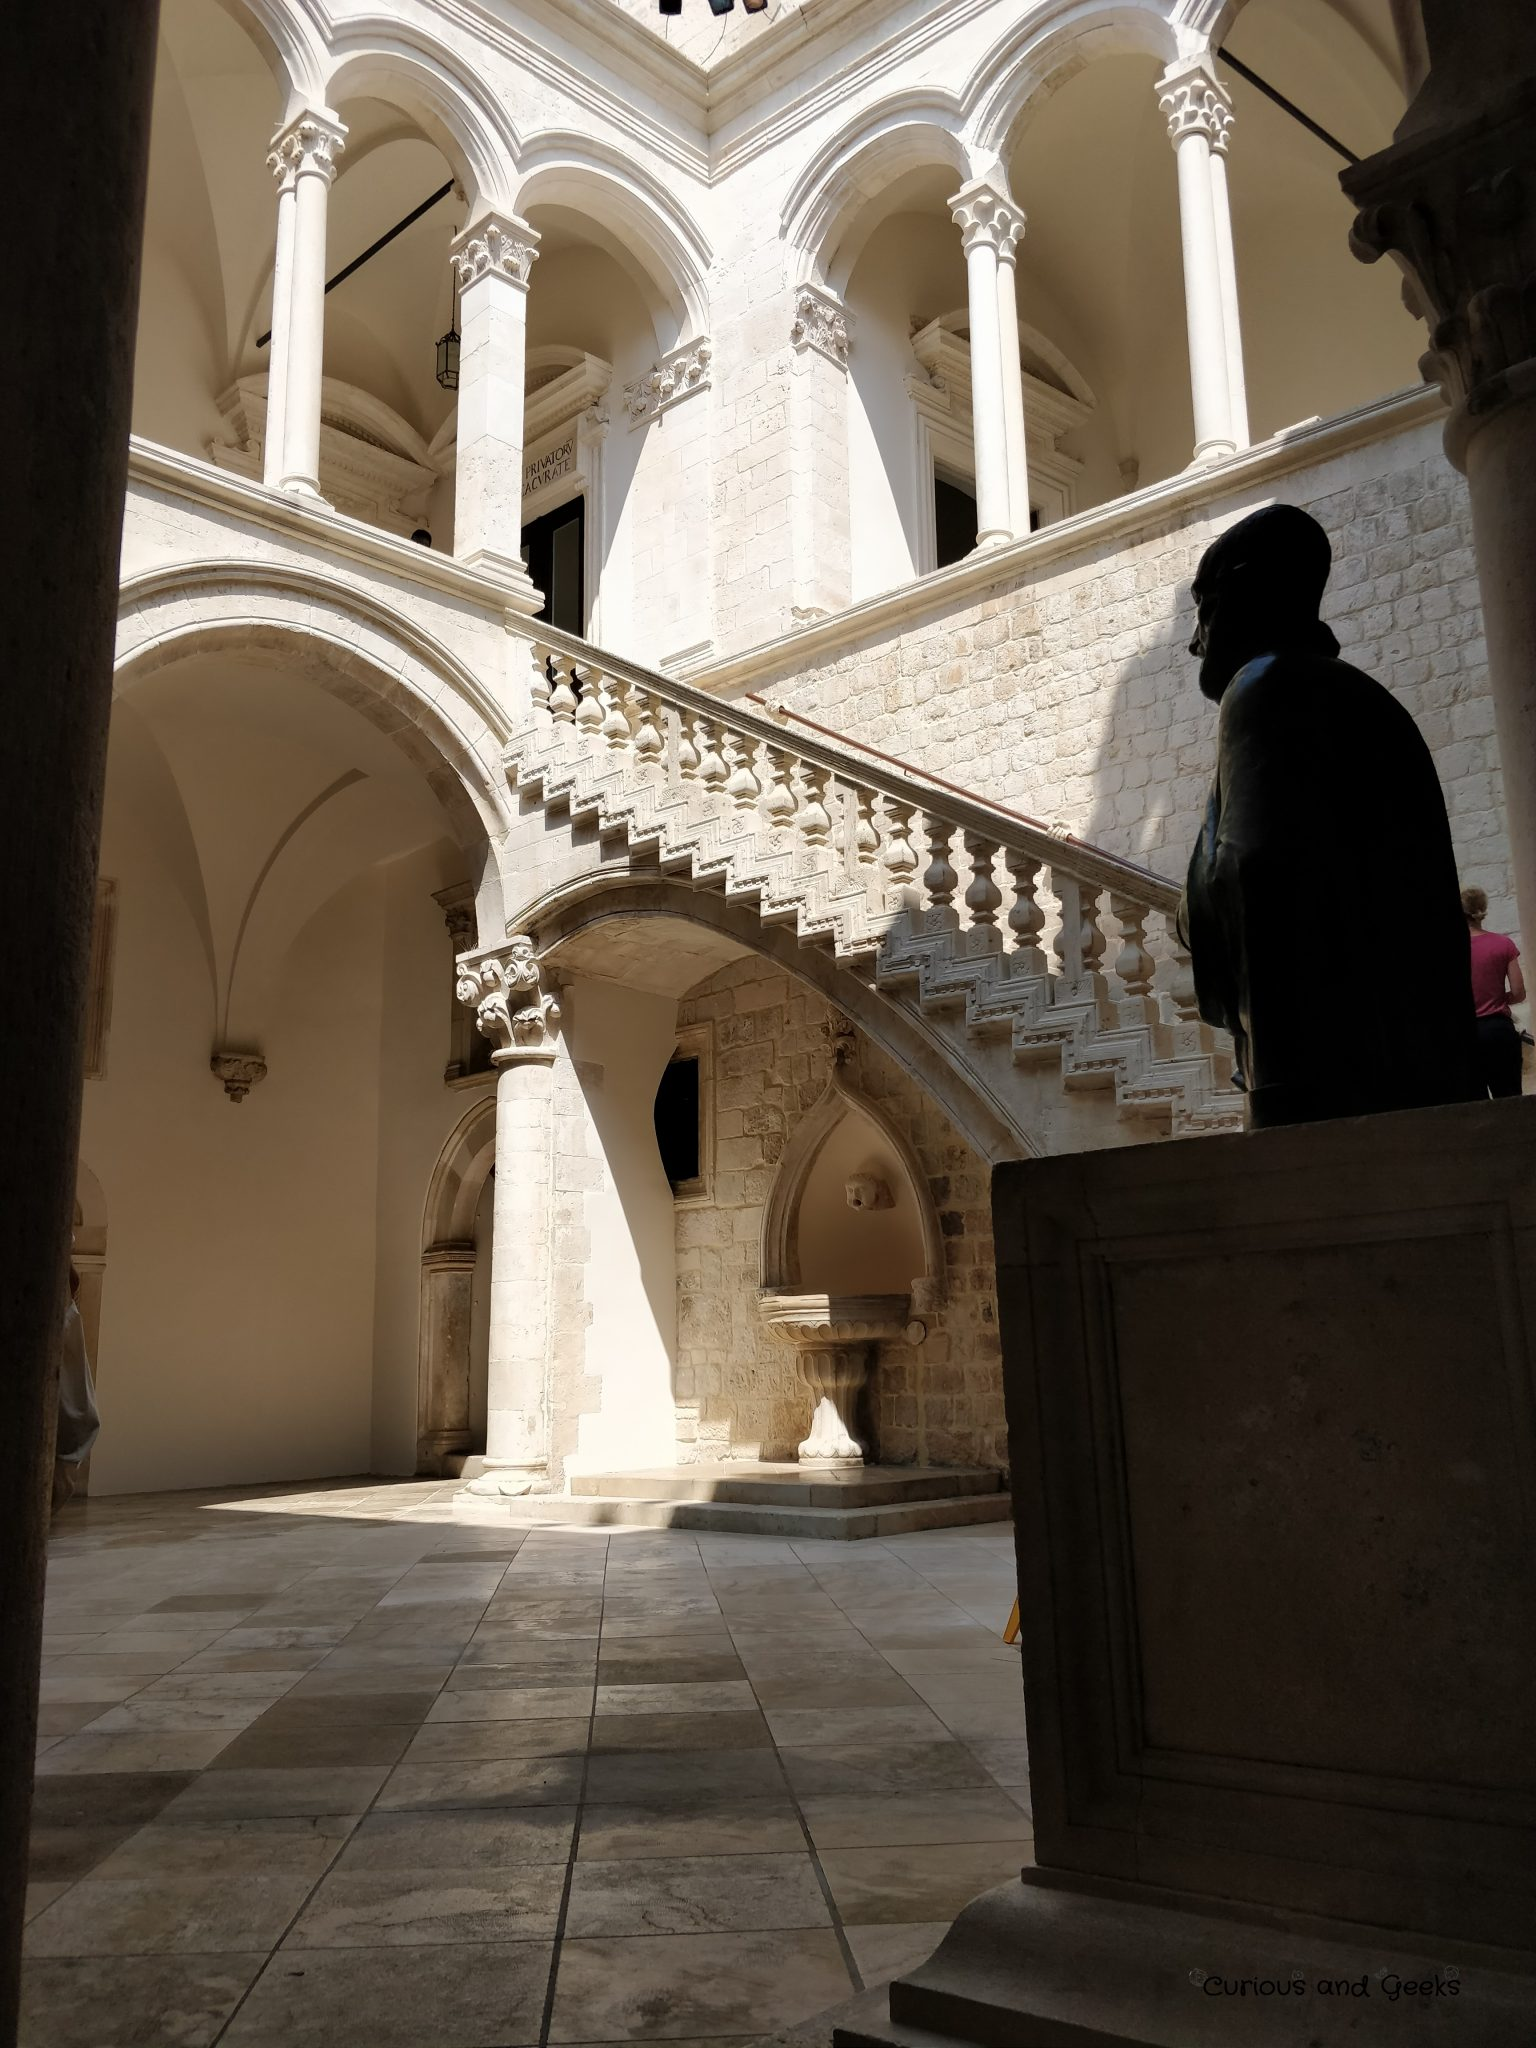 The Rector's Palace in Dubrovnik - s02e06